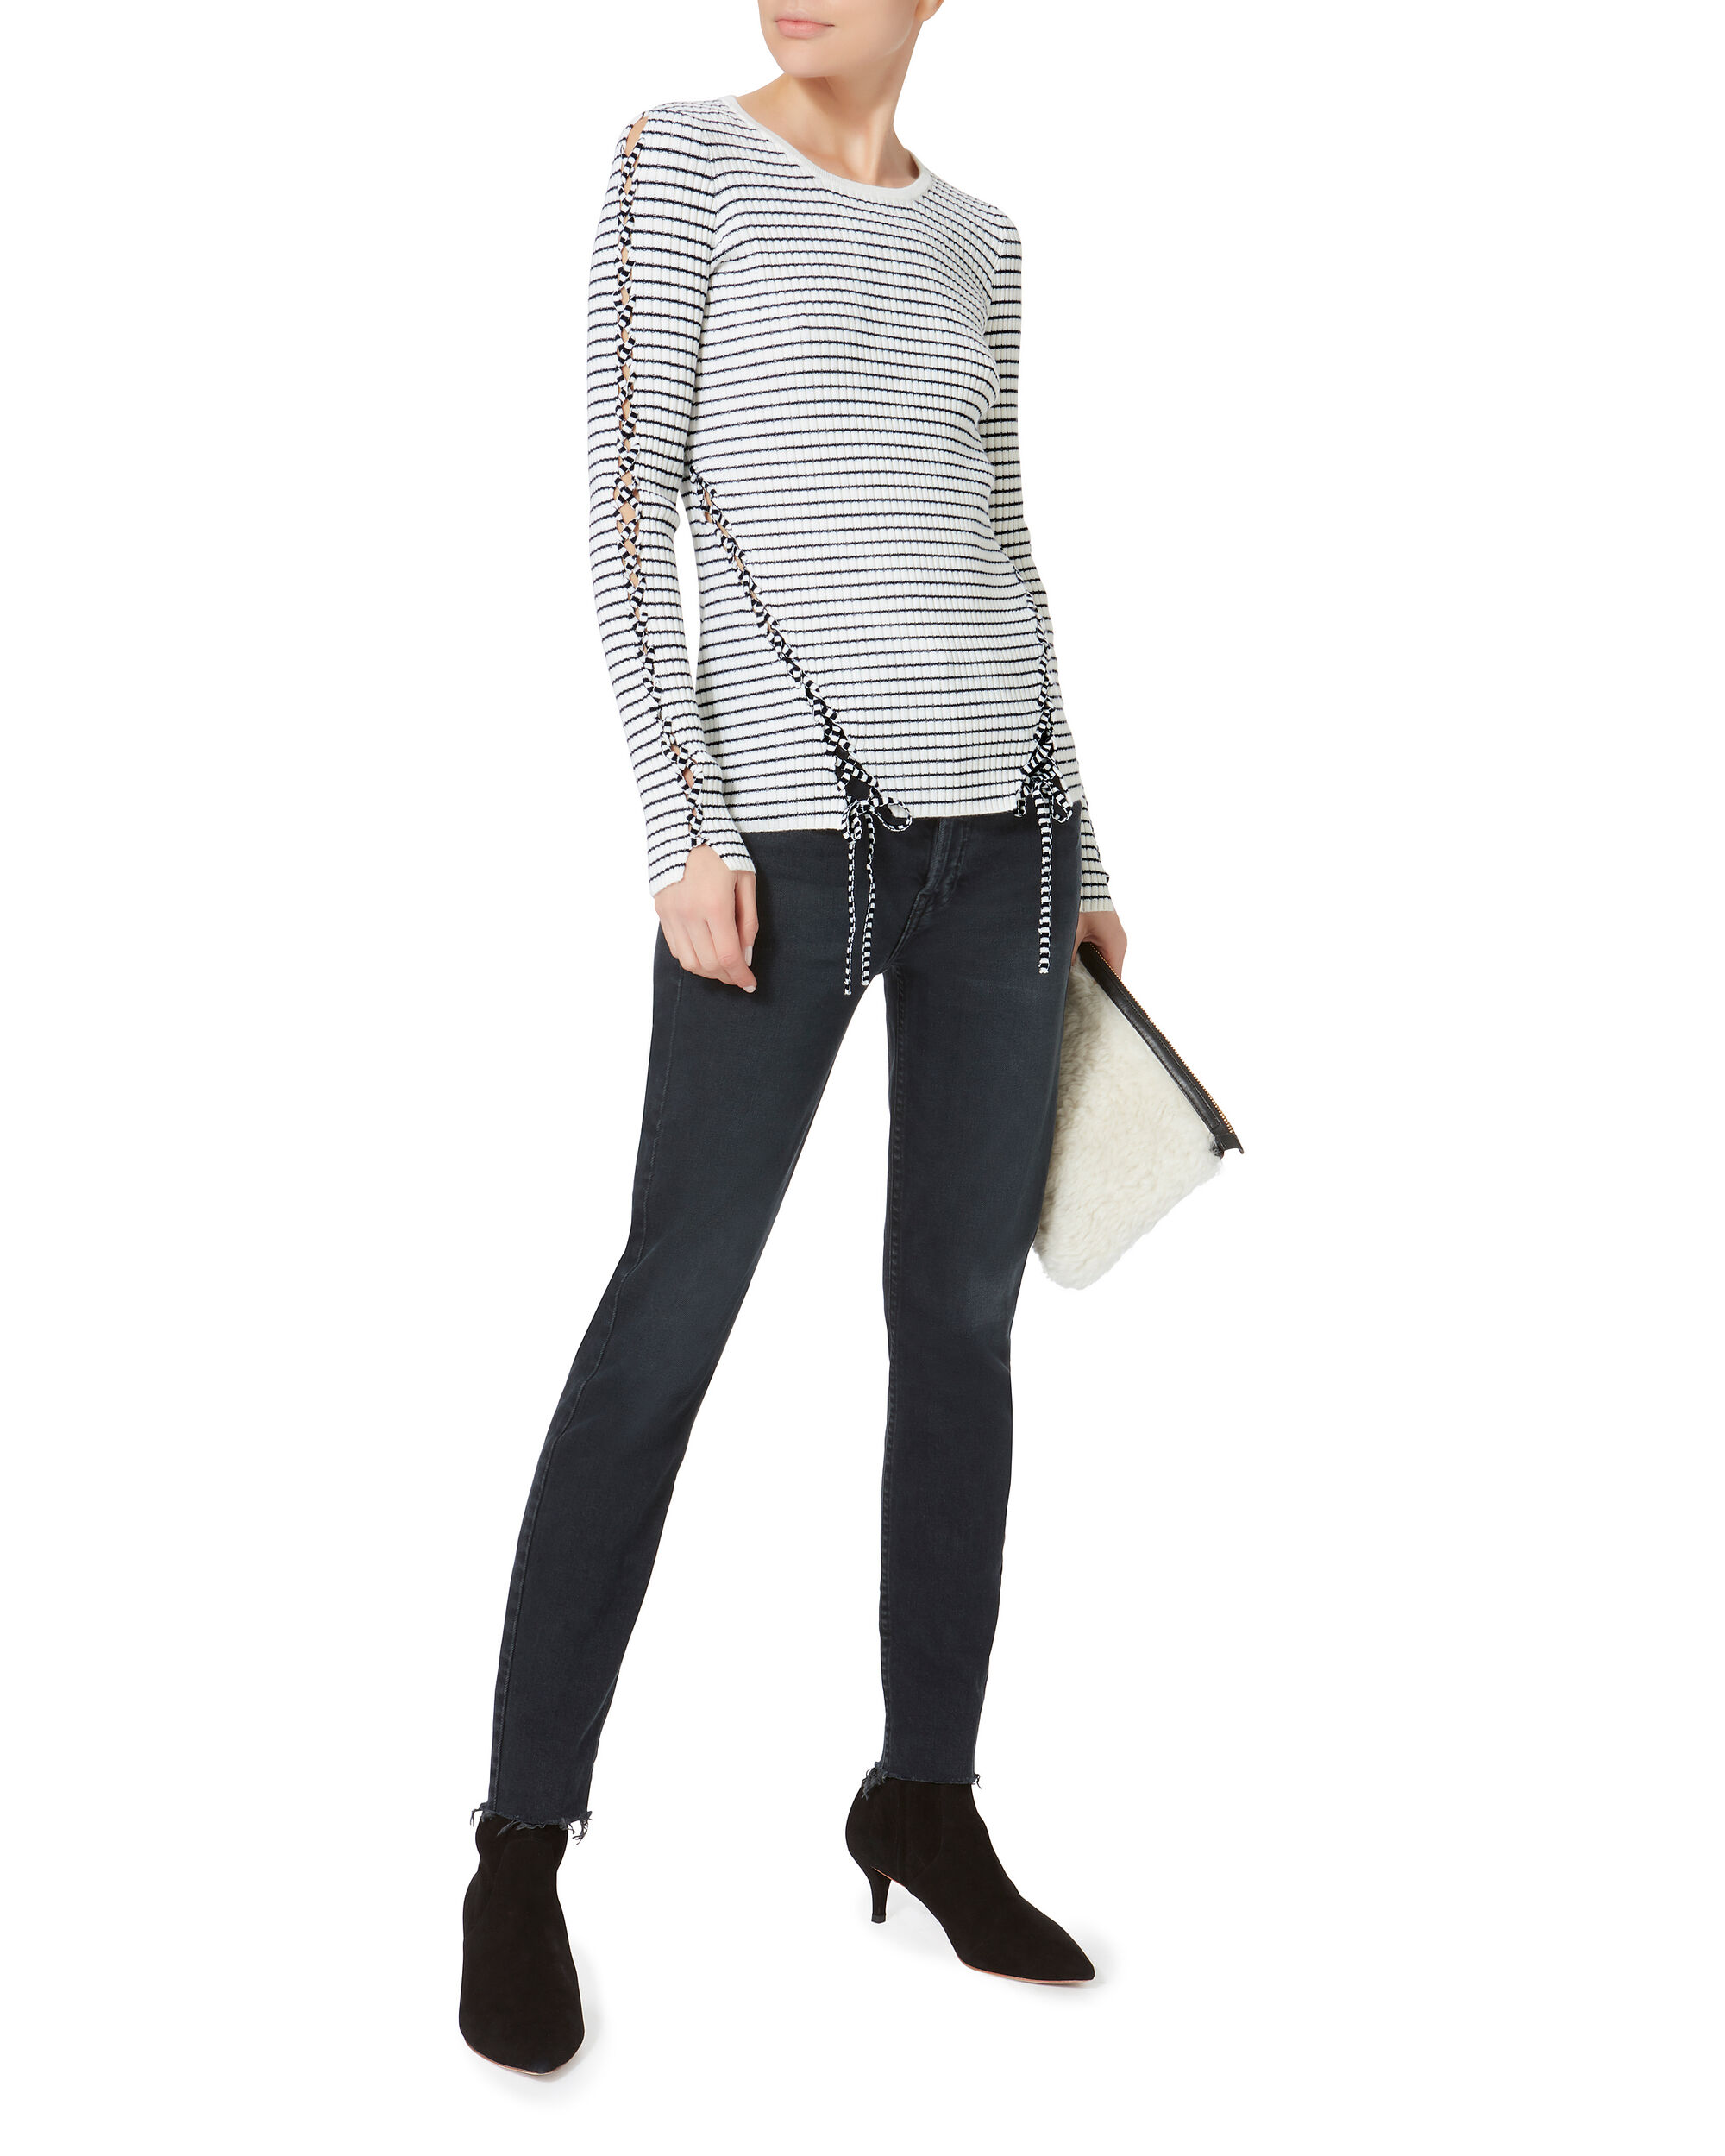 Lace-Up Stripe Pullover Sweater, PATTERN, hi-res